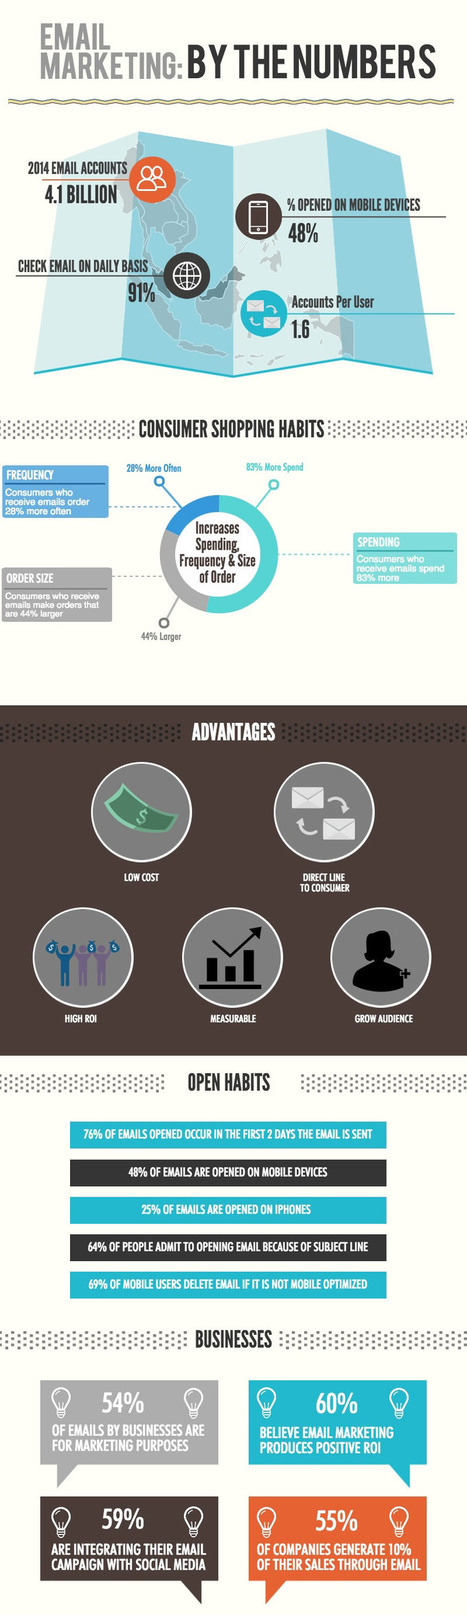 Email Marketing: By The Numbers (Infographic) | Digital Strategy | Scoop.it